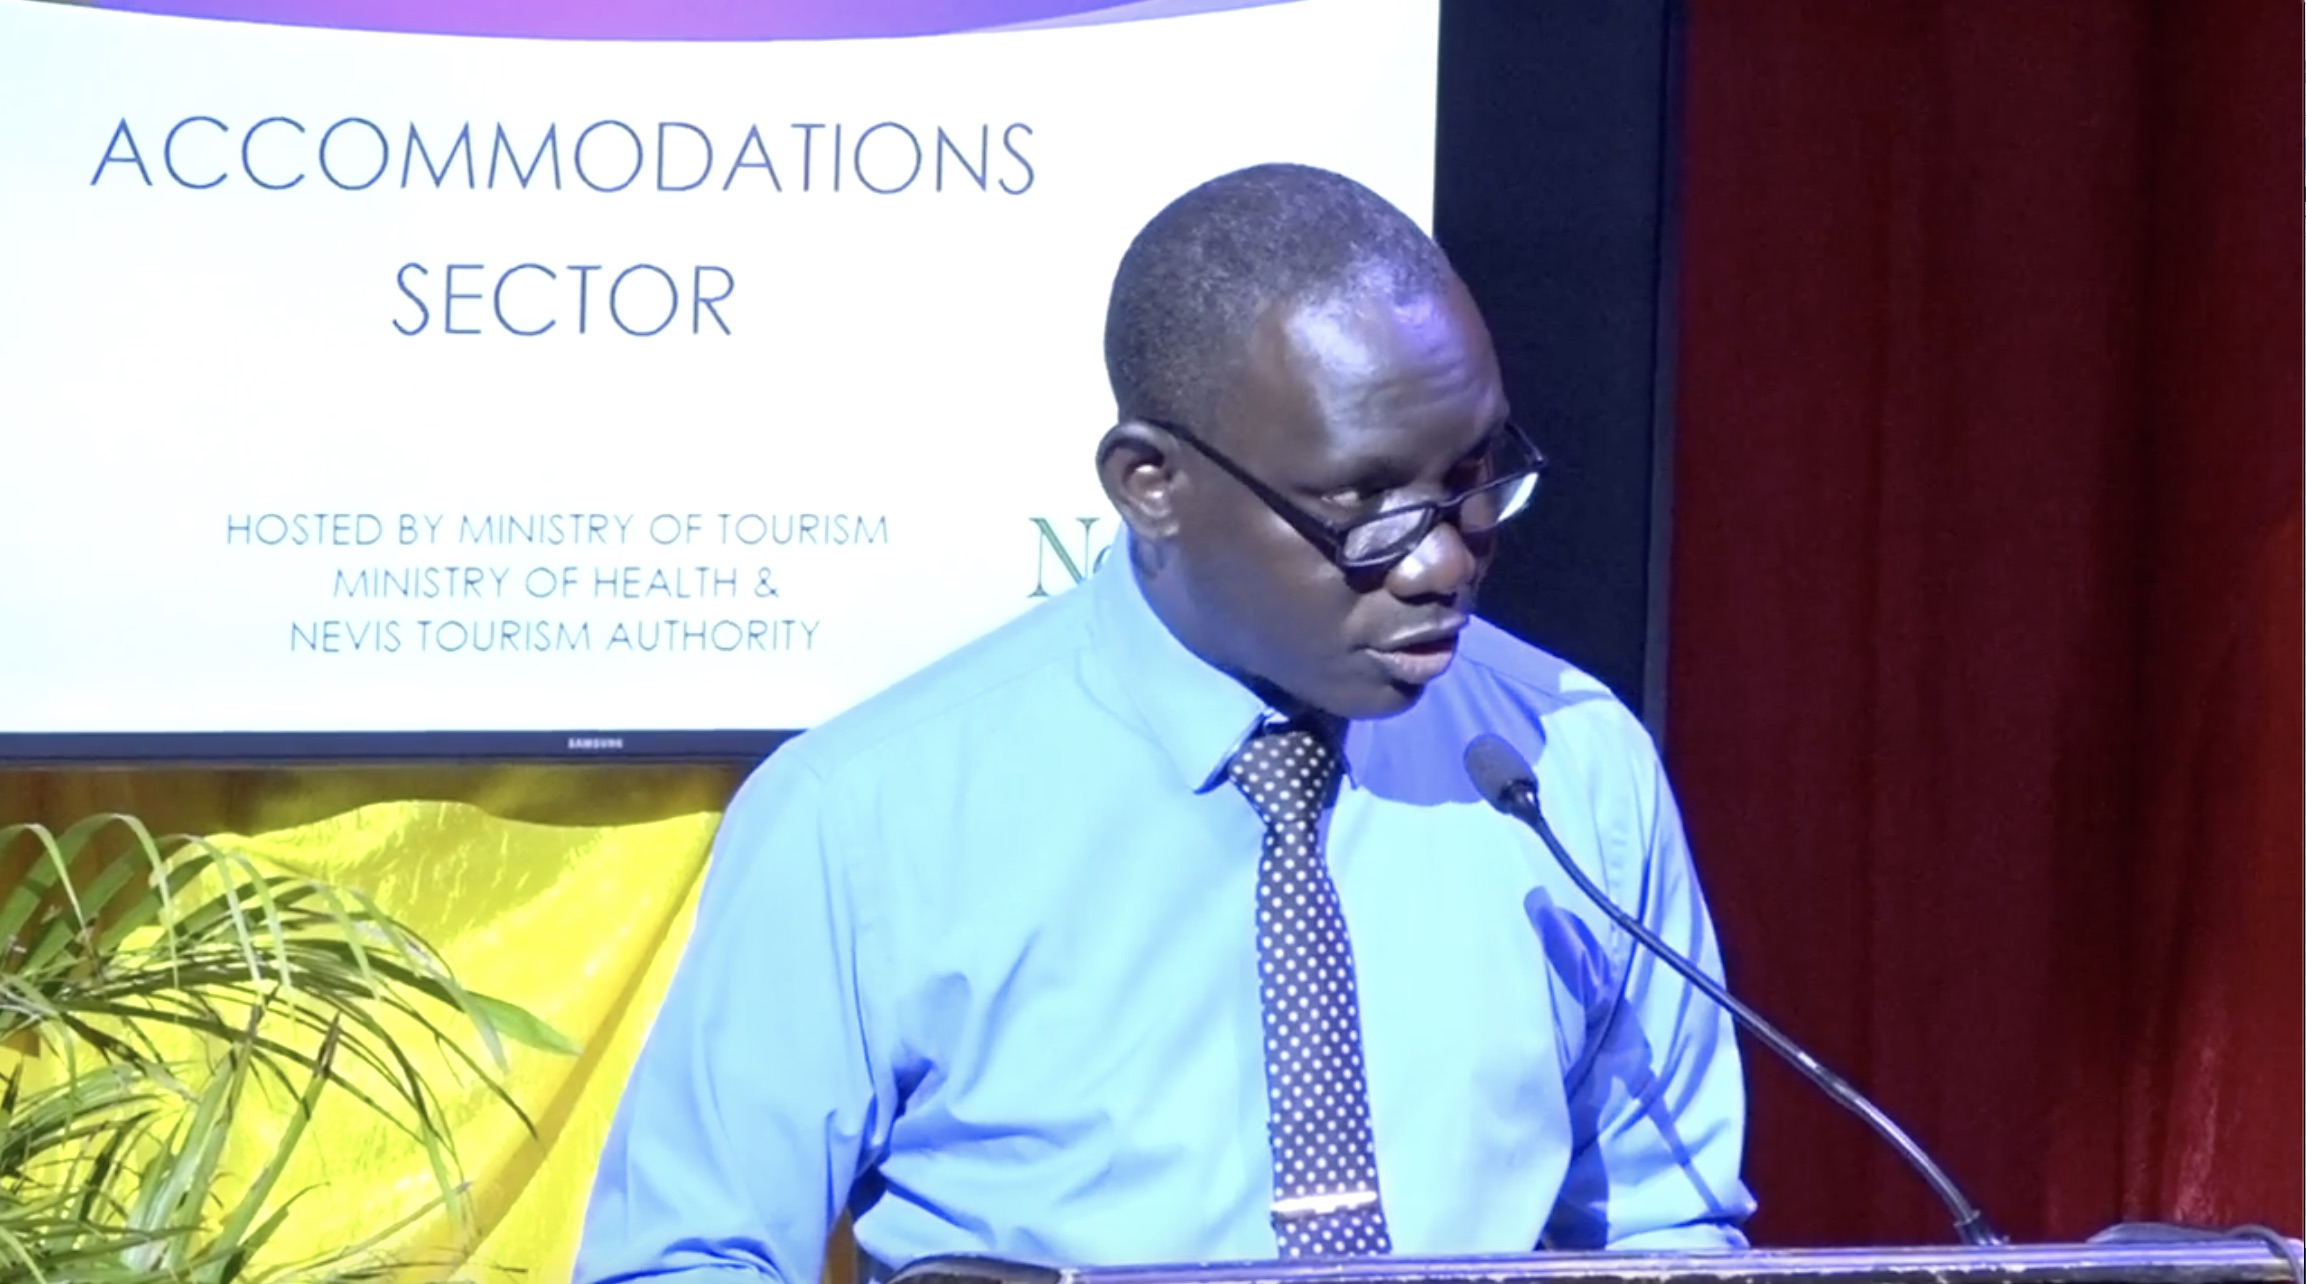 Mr. John Hanley, Permanent Secretary in the Ministry of Tourism on Nevis, delivering remarks at the first COVID-19 sensitization training session, hosted by the Ministry of Tourism in collaboration with the Nevis Tourism Authority and the Ministry of Health, on July 27, 2020 at the Nevis Performing Arts Centre